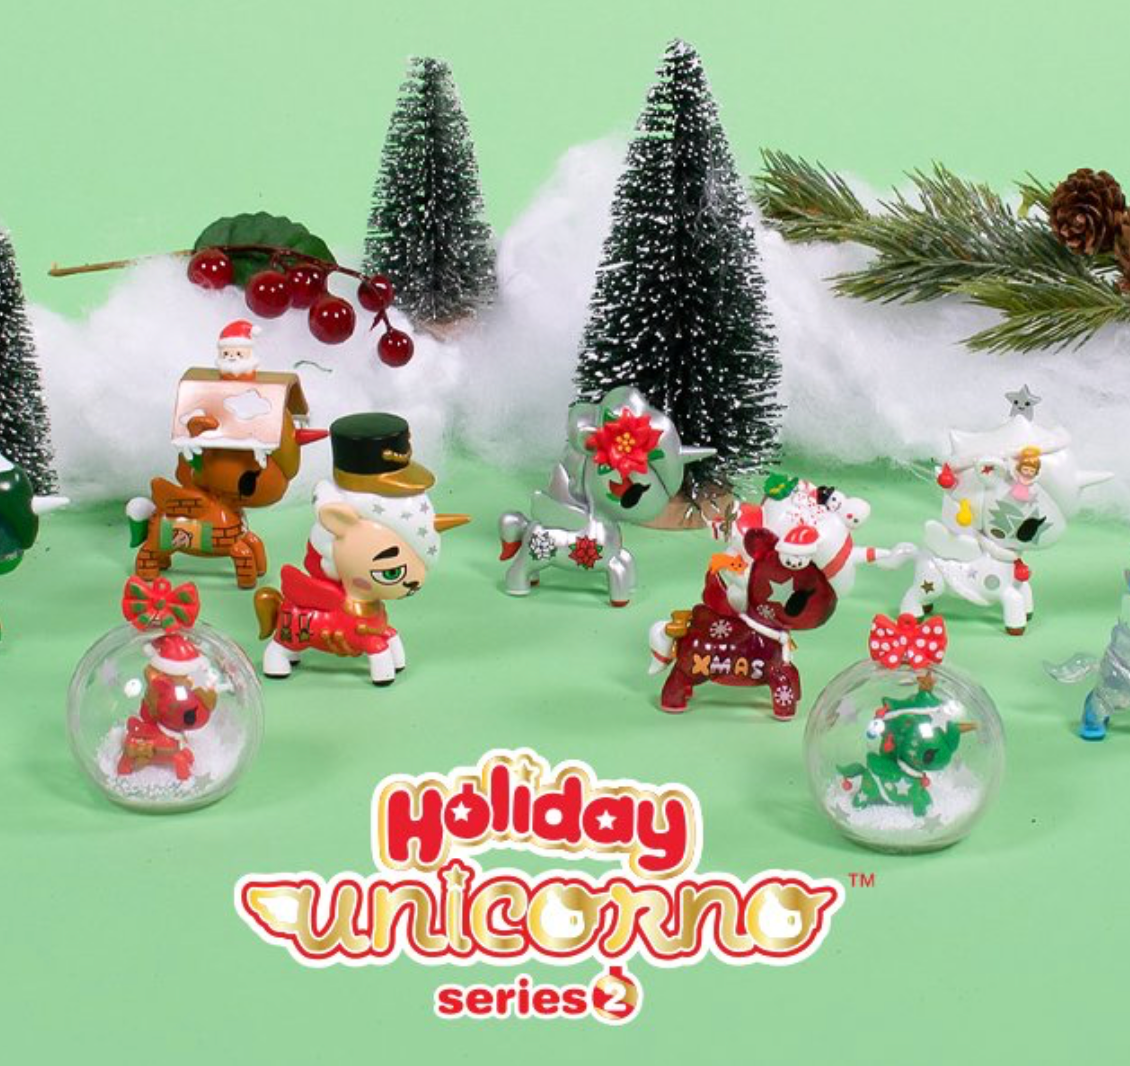 Holiday Unicornos Series 2 - Tokidoki - Blind Box